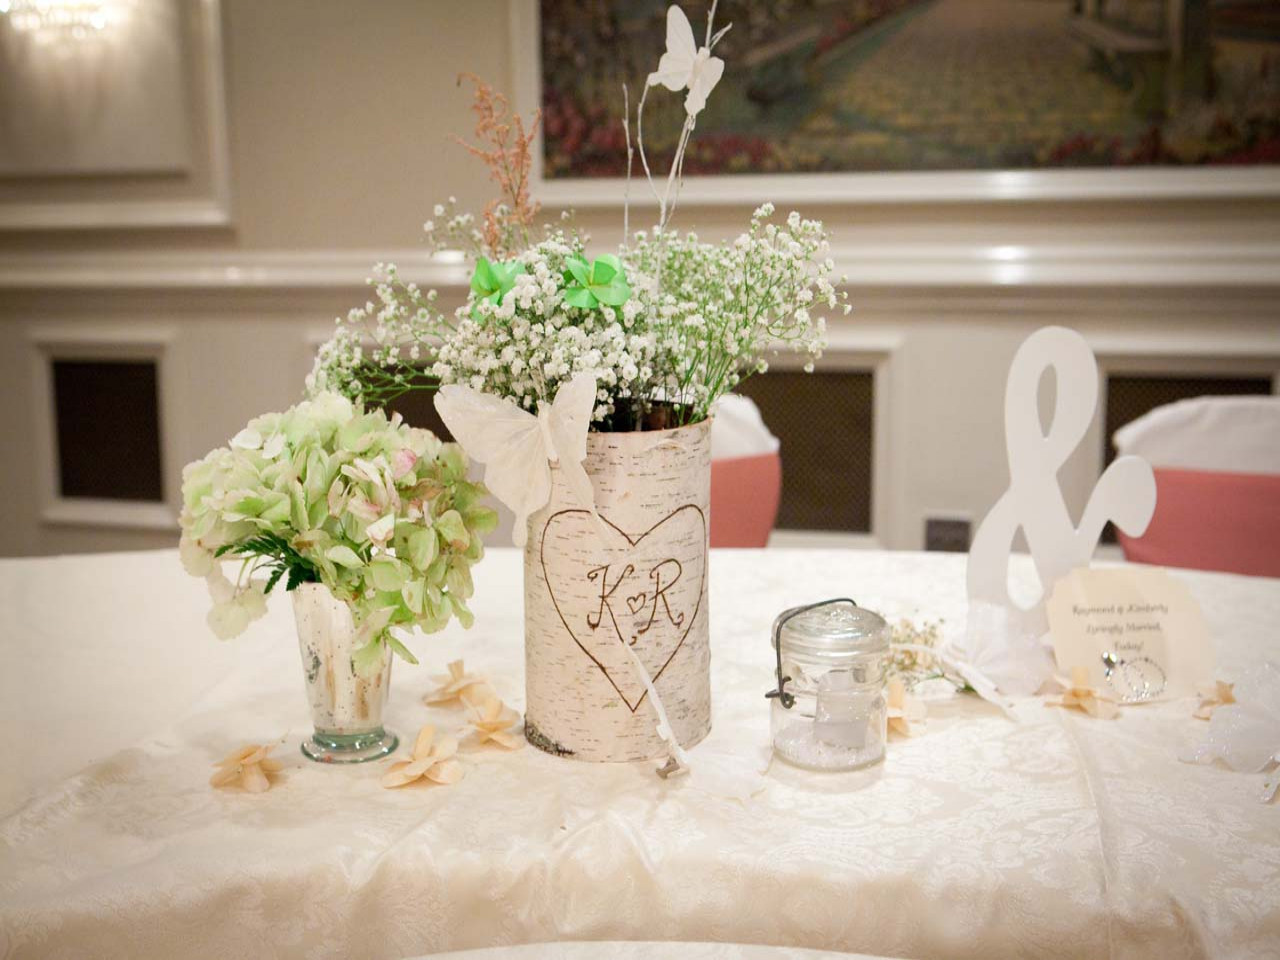 Best ideas about DIY Wedding Table Decorations . Save or Pin 30 Stunning Wedding Reception Table Setting Ideas Now.